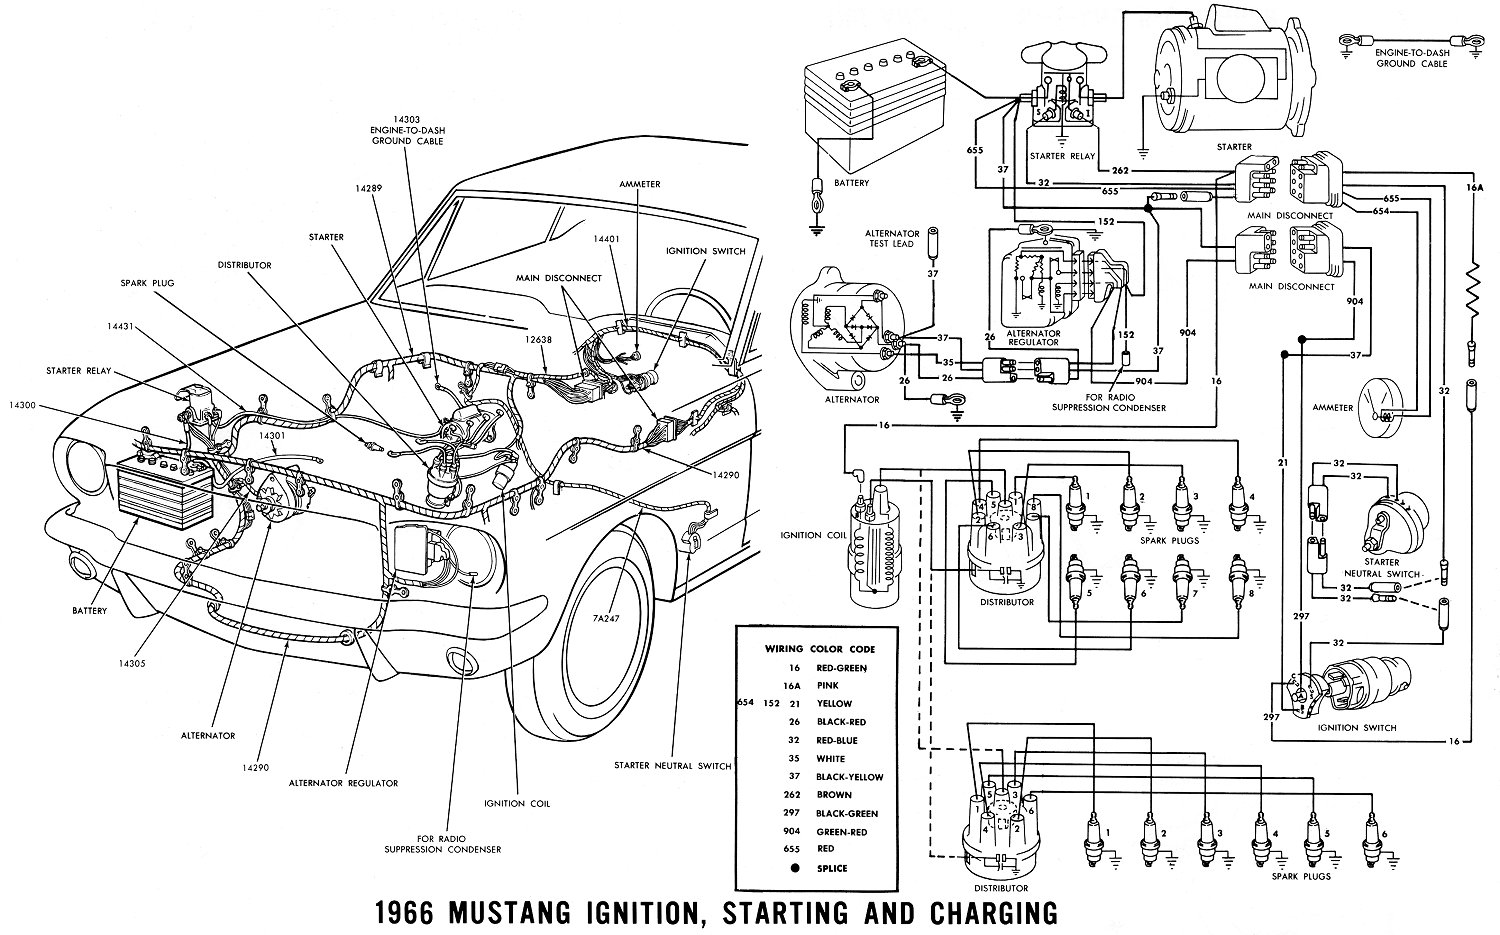 T2887014 Cooling fan relay located in 1994 also Diagrams additionally 1964 Lincoln Fuse Box Wiring Diagrams Schematic 1979 Ford F150 furthermore 1980 Jeep Cj7 Fuel Gauge Wiring Diagram together with 664544 Aod Neutral Safety Switch Issue. on 2004 ford thunderbird wiring diagram